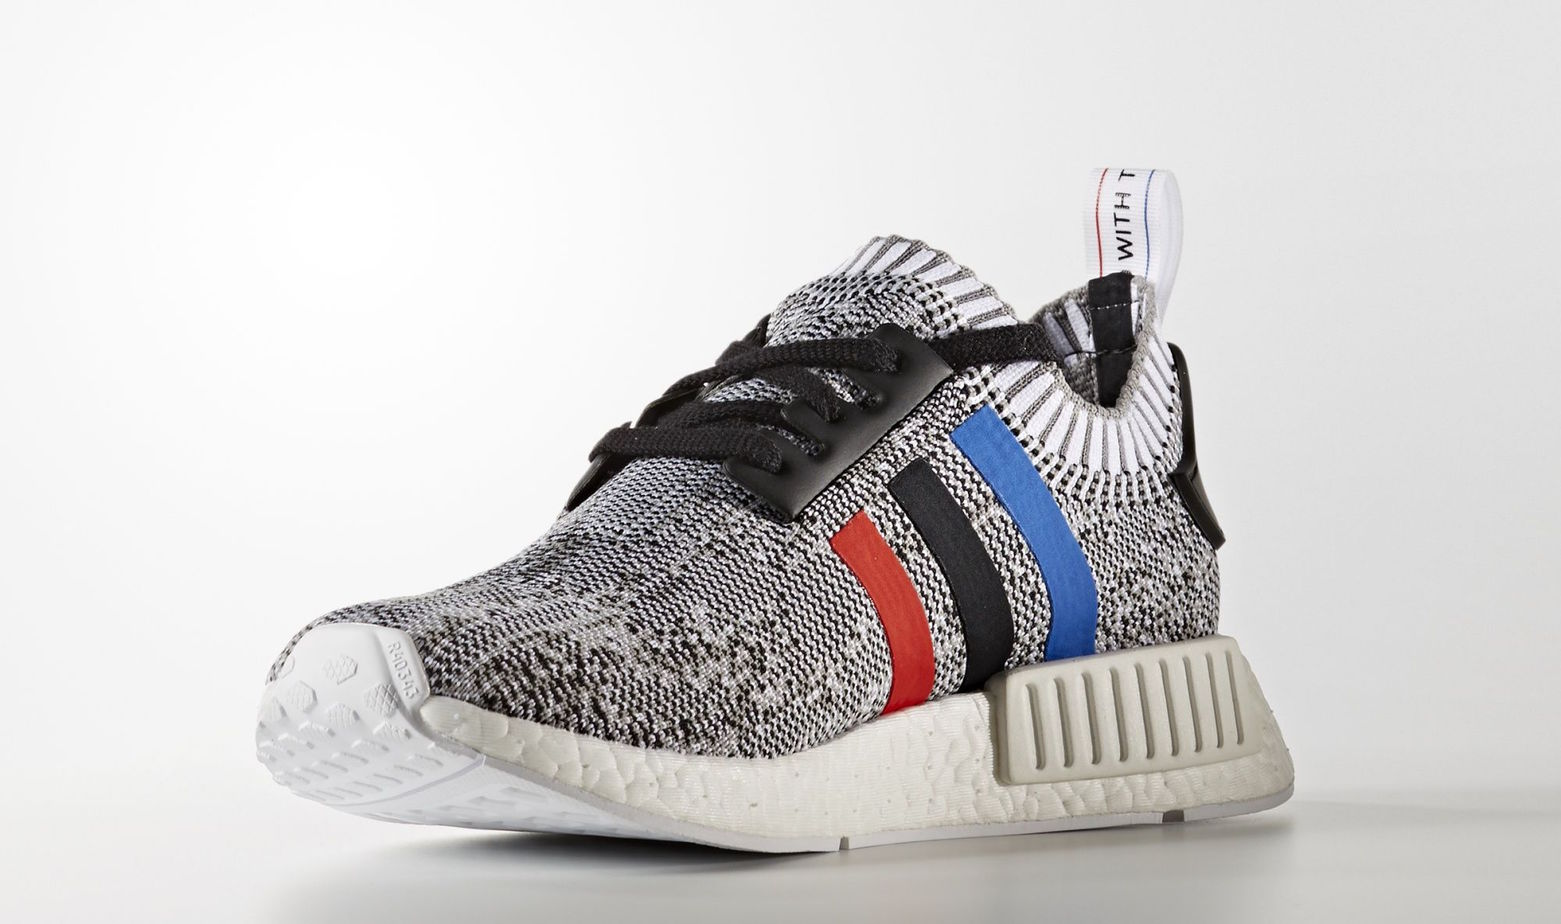 adidas nmd r1 primeknit white tricolore justfreshkicks. Black Bedroom Furniture Sets. Home Design Ideas